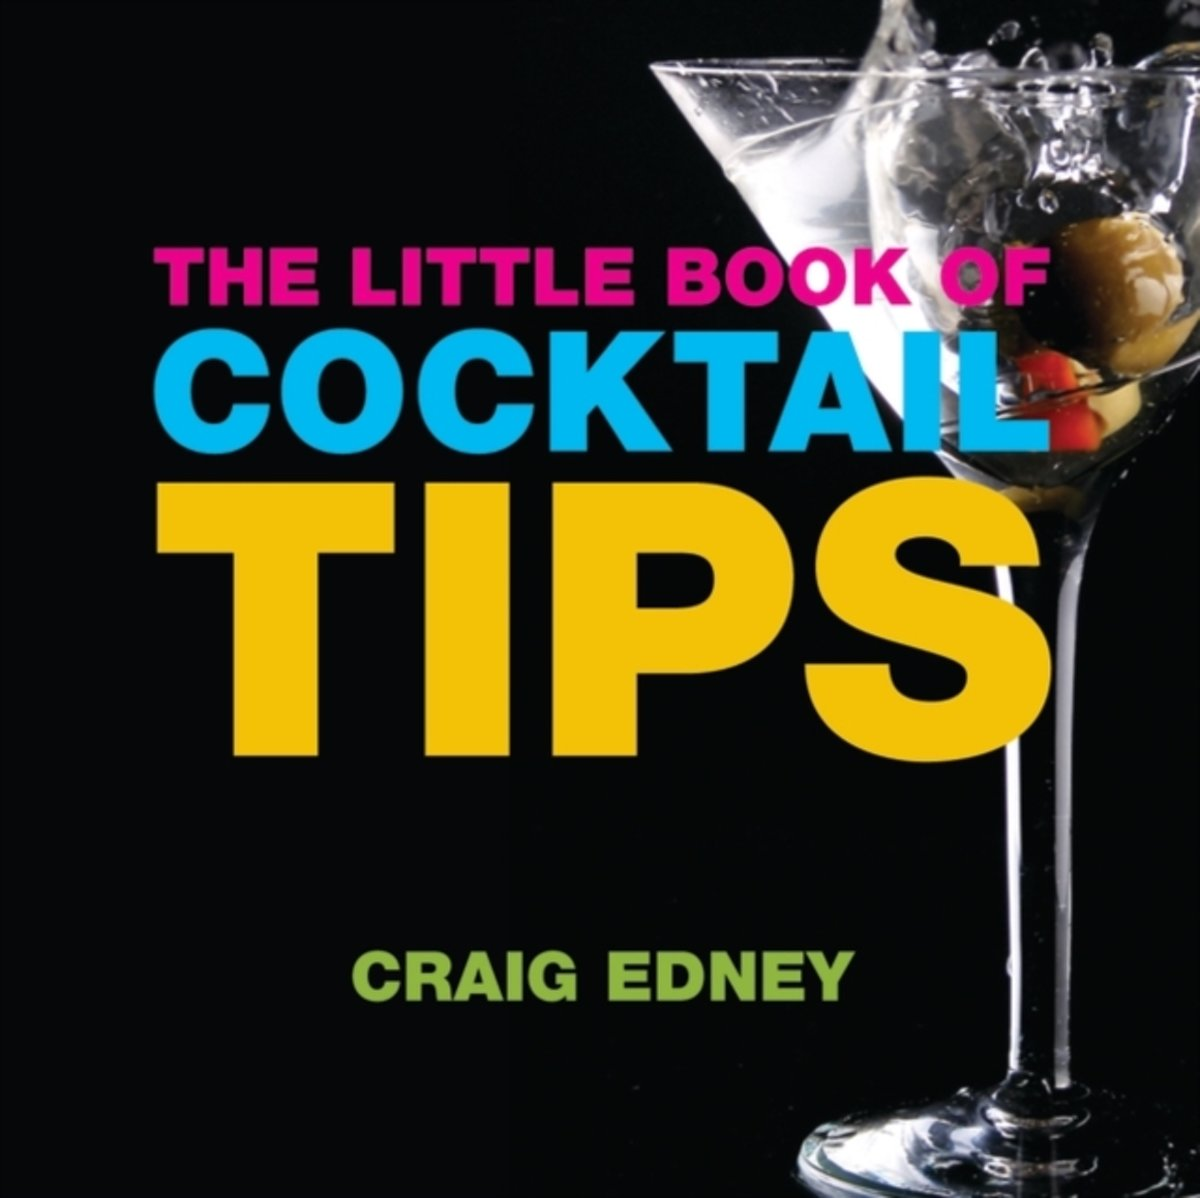 The Little Book of Cocktail Tips